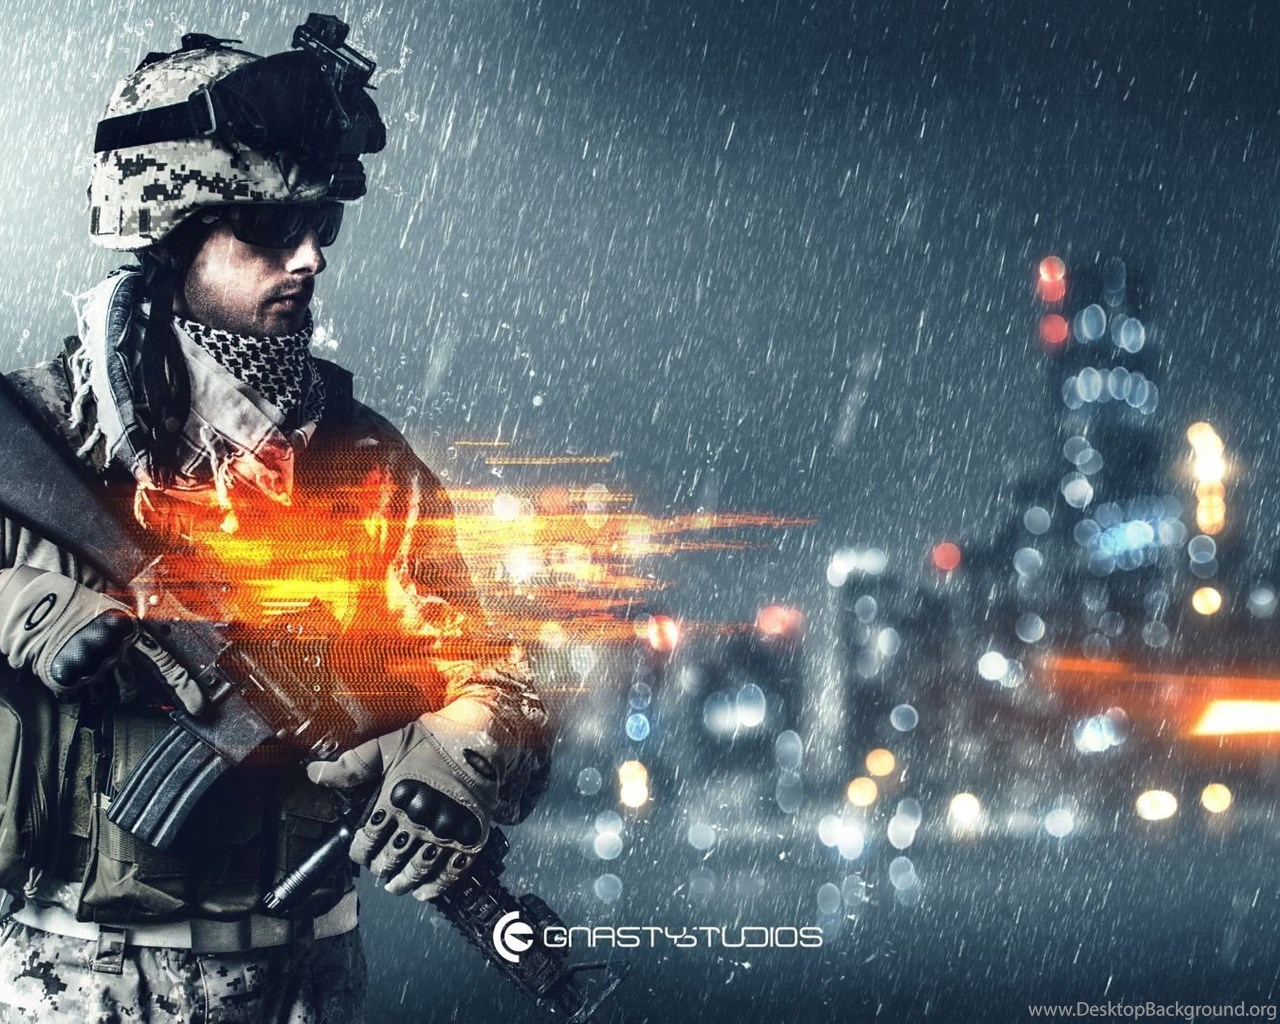 10 Epic Battlefield 4 Wallpapers And Digital Fan Art Desktop Background